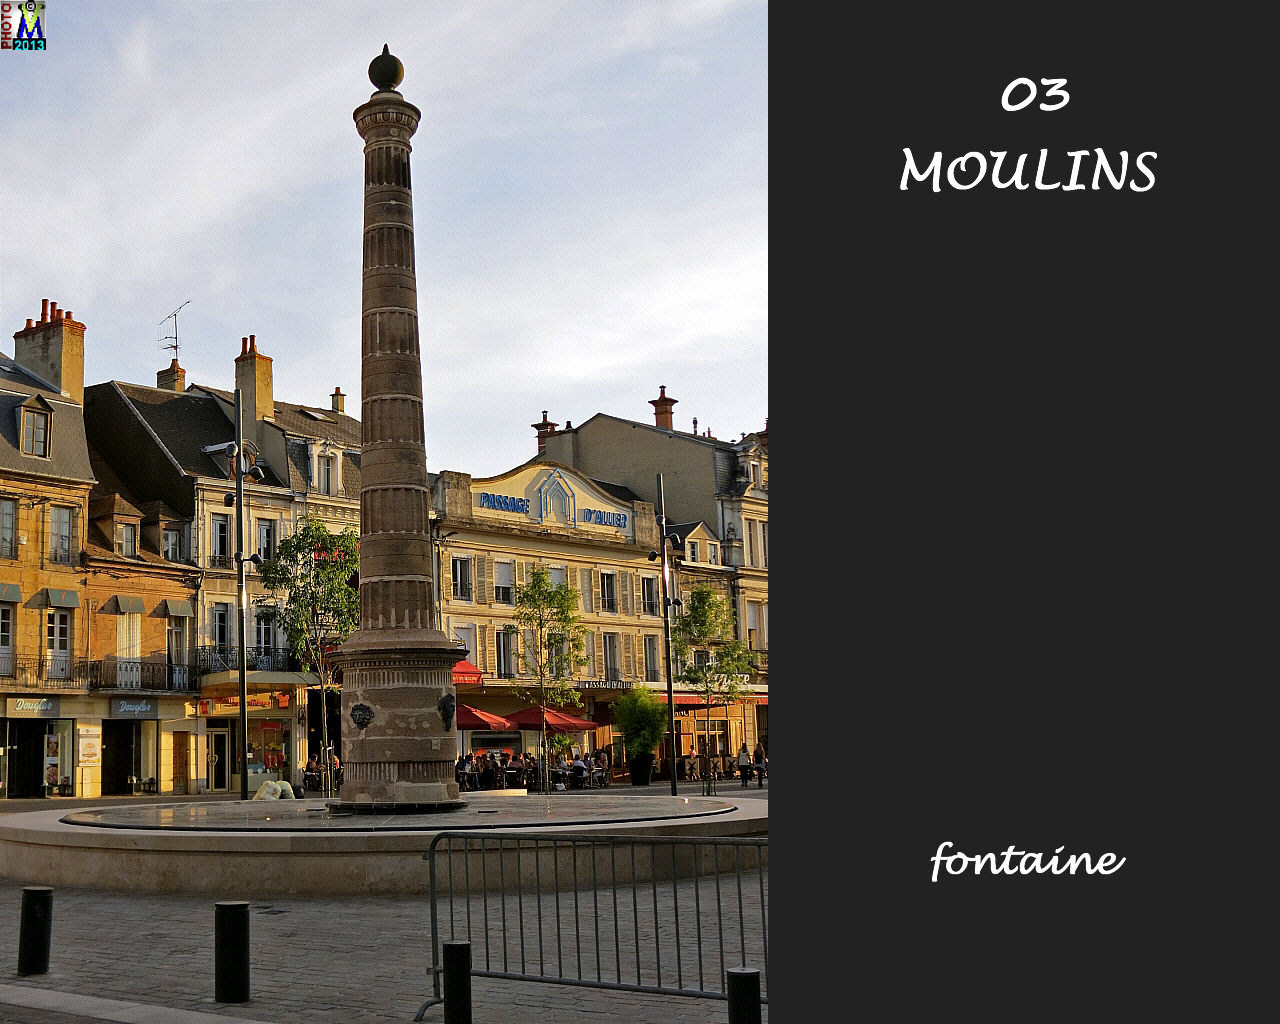 03MOULINS_fontaine_100.jpg